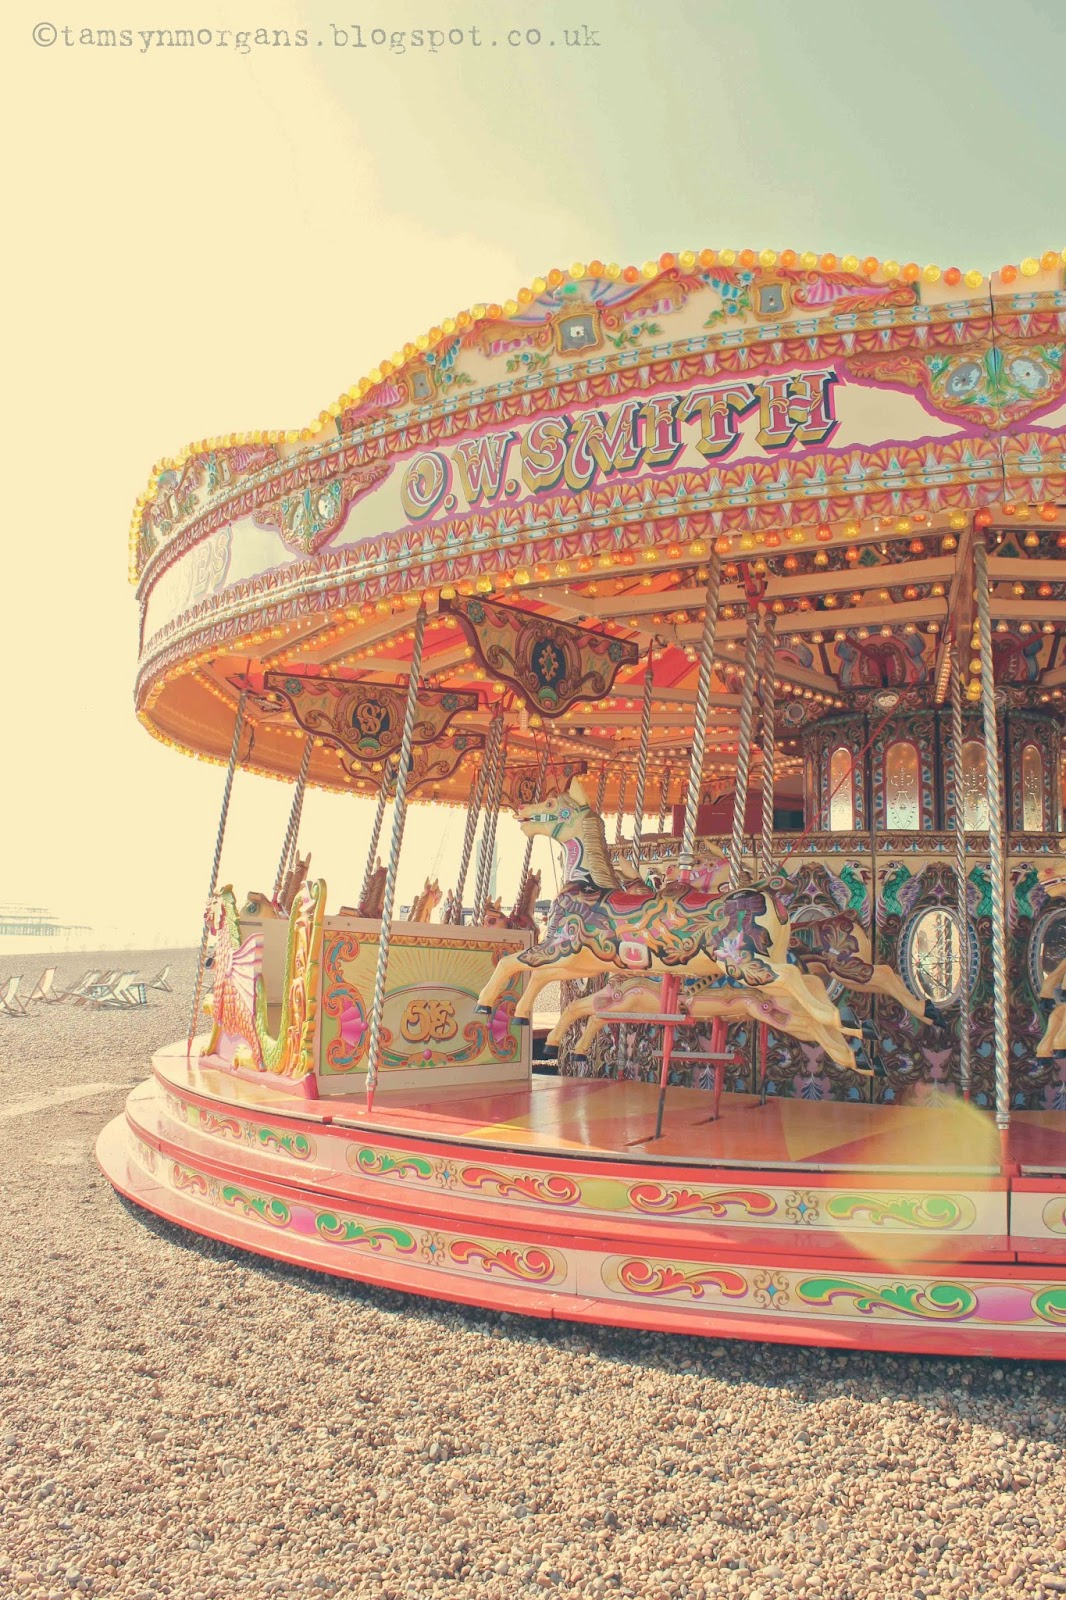 Seaside Funfair at Brighton